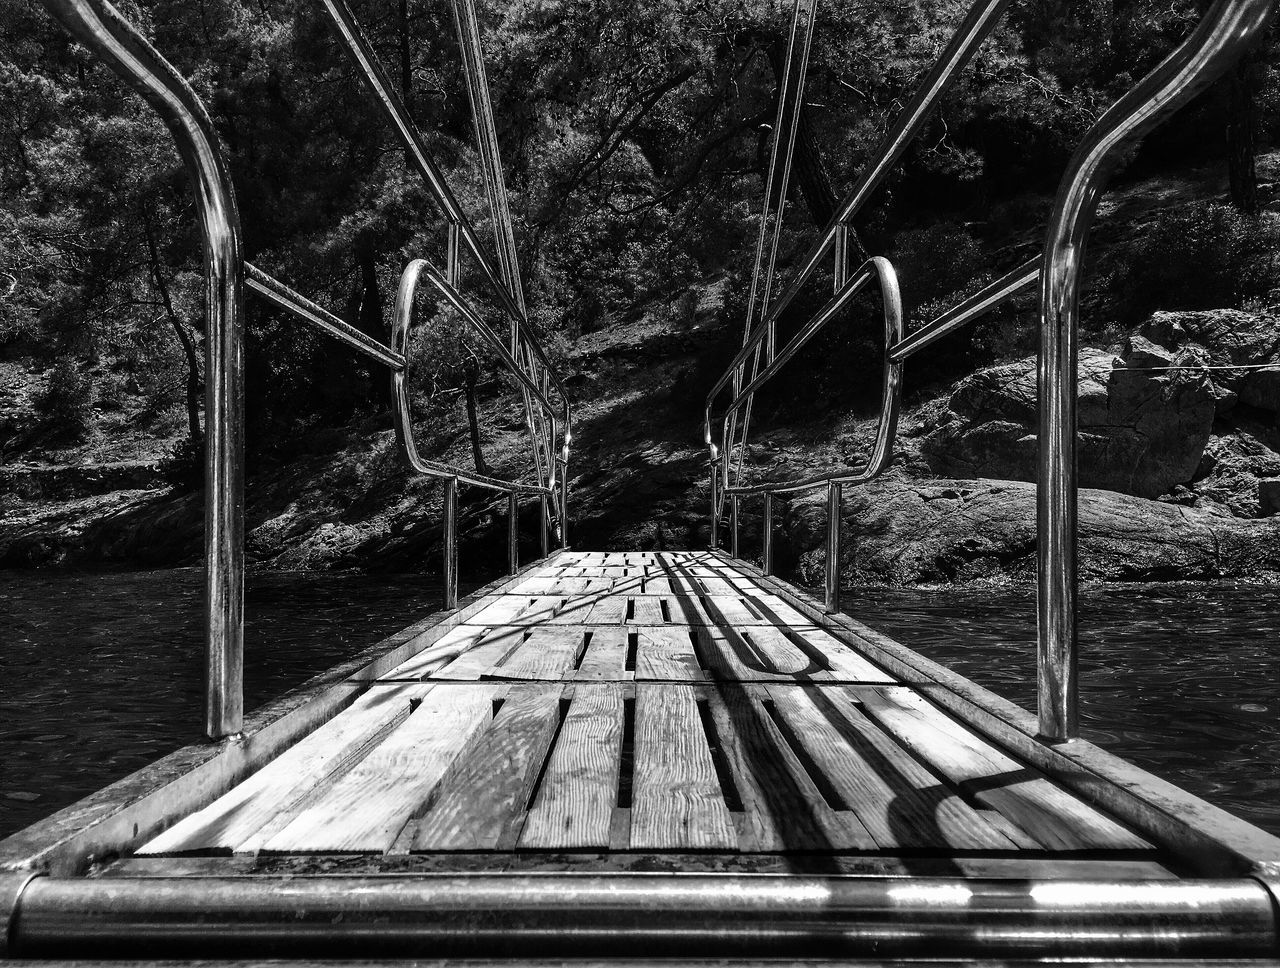 Splash Blackandwhite Water Boat Trip Boatride WalkThePlank Lagoon Boat First Eyeem Photo